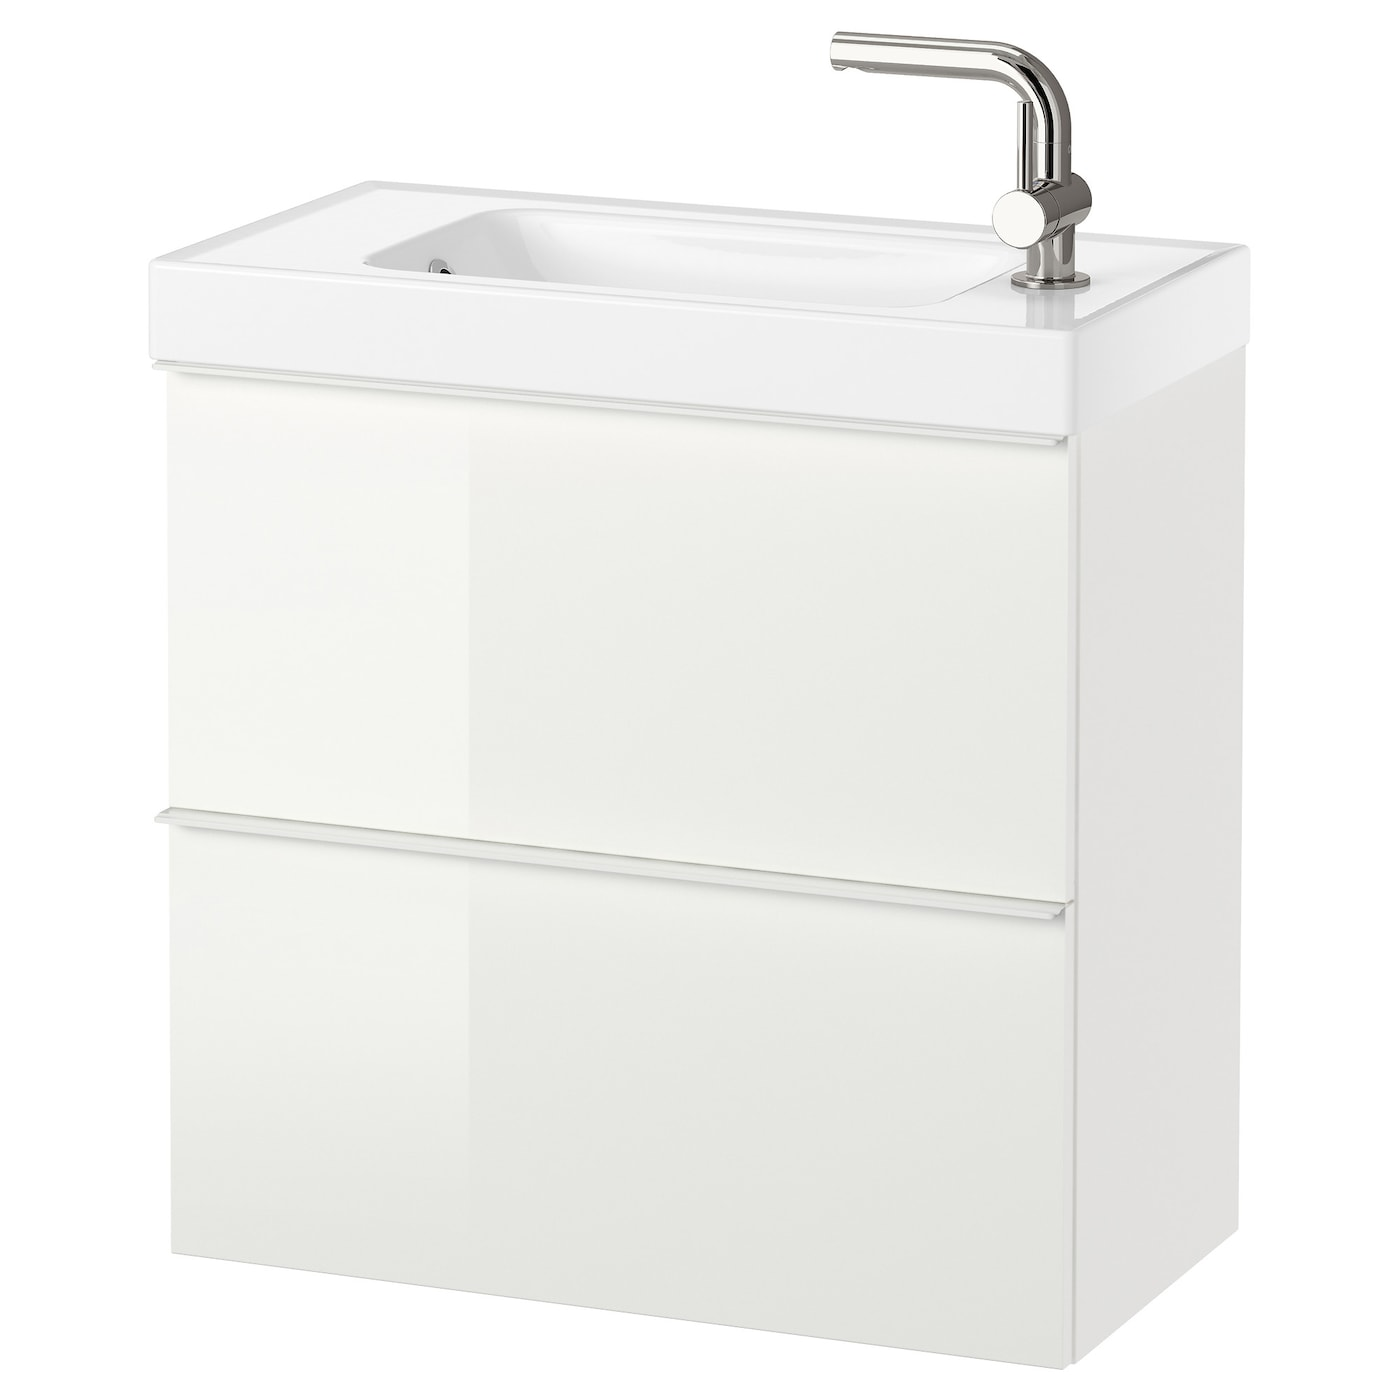 IKEA GODMORGON/HAGAVIKEN wash-stand with 2 drawers